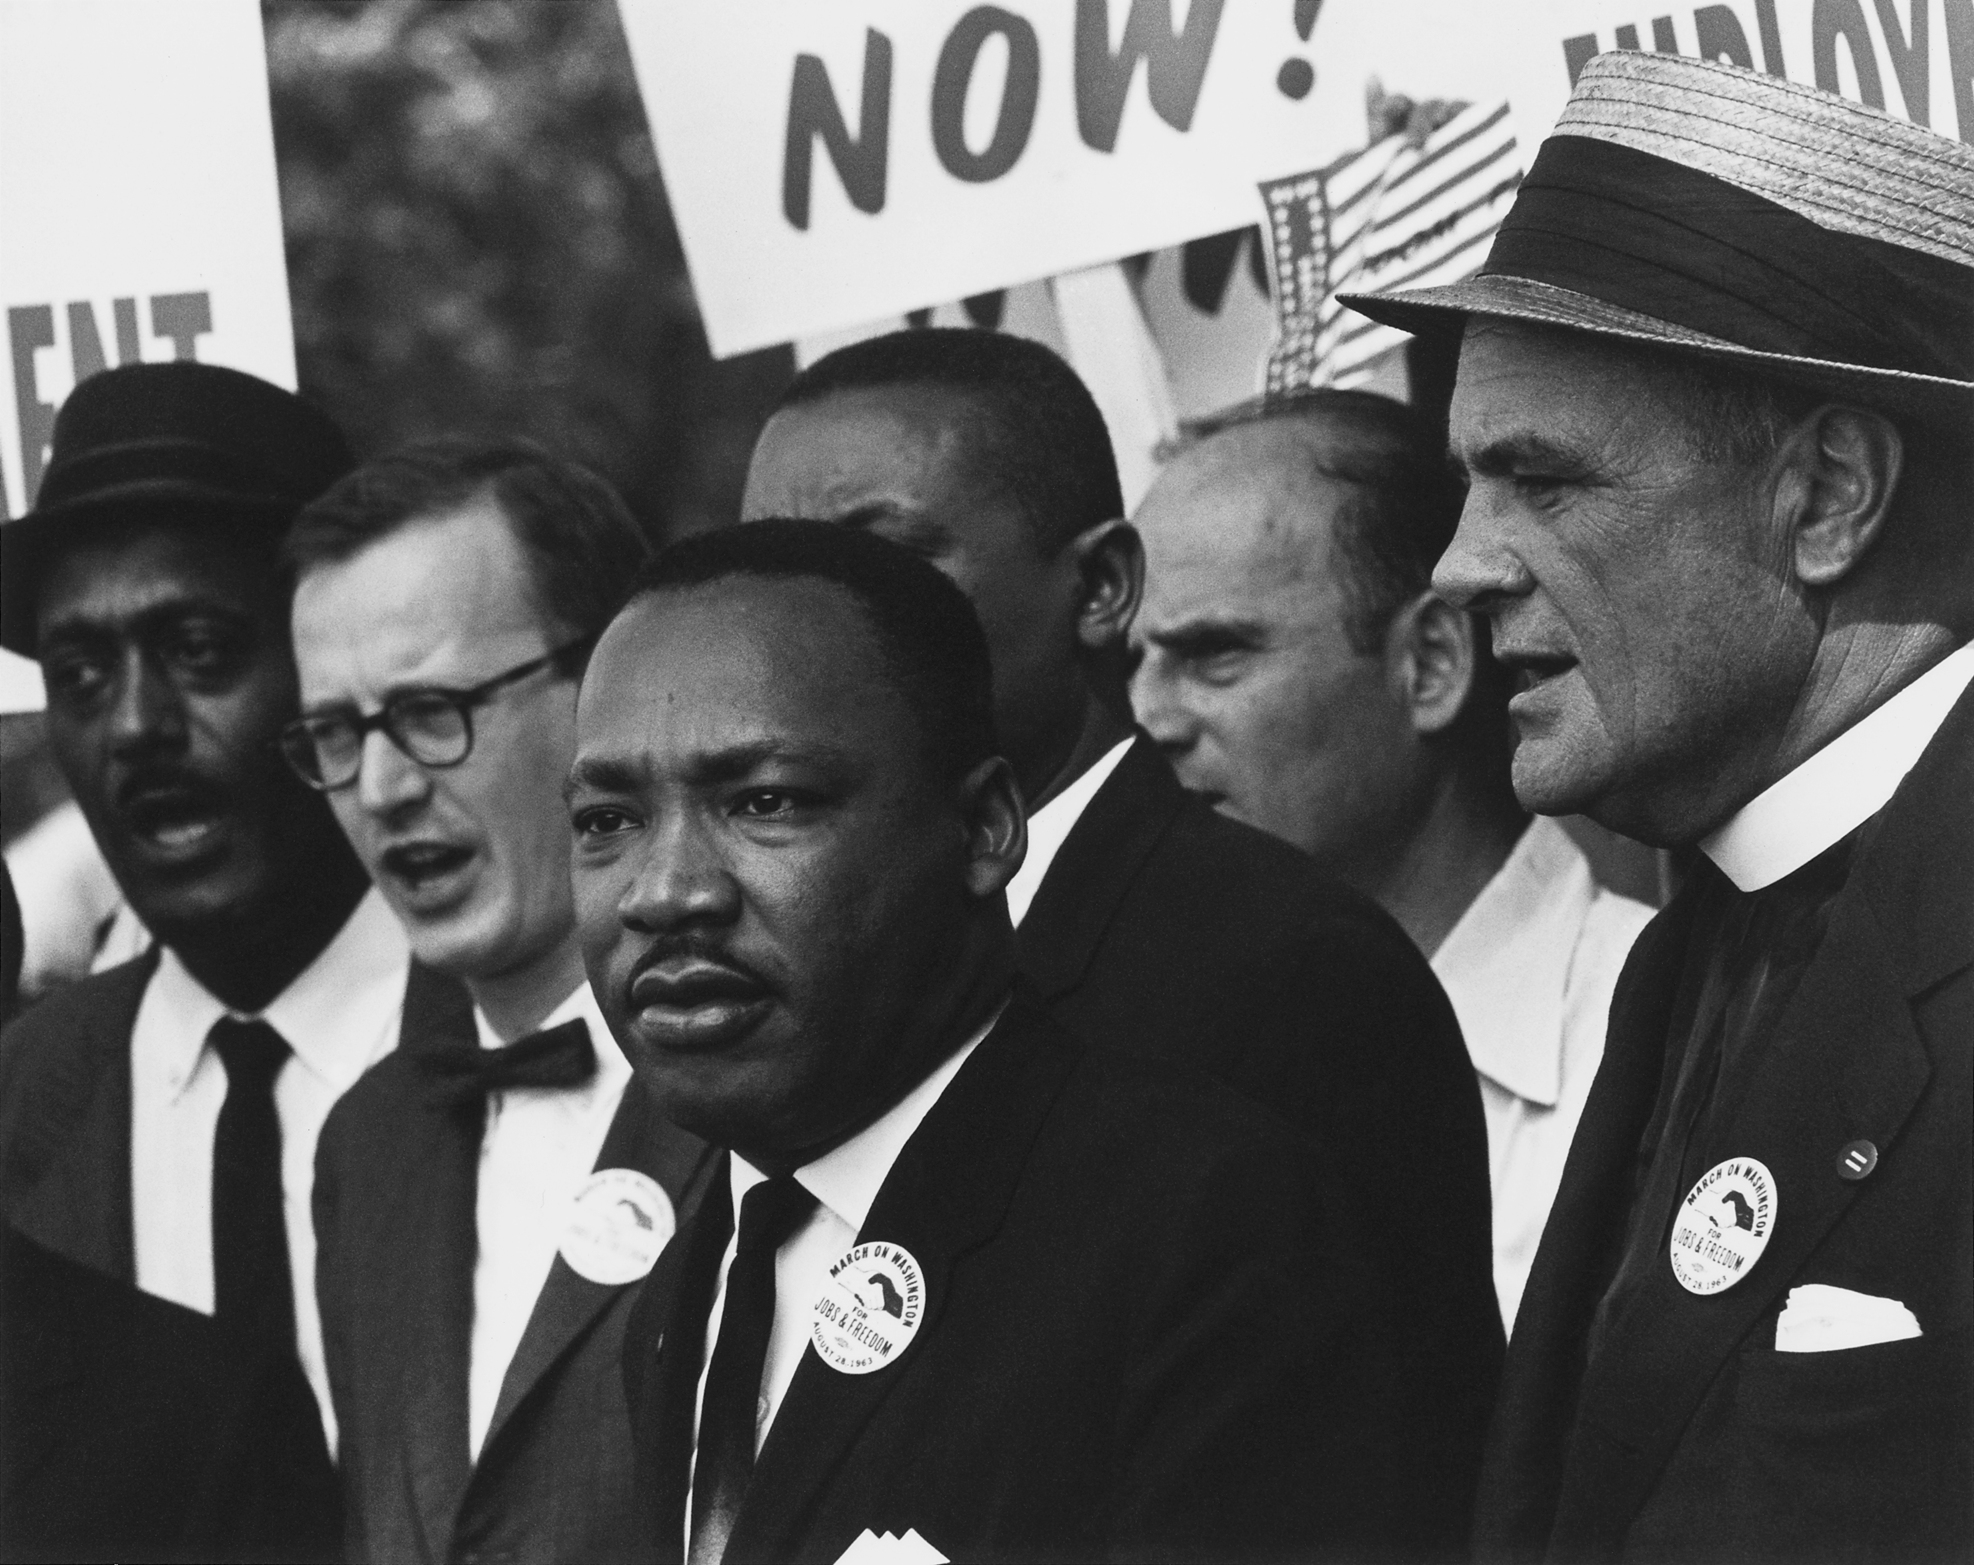 major stages of the civil rights movement from 1955 to 1970